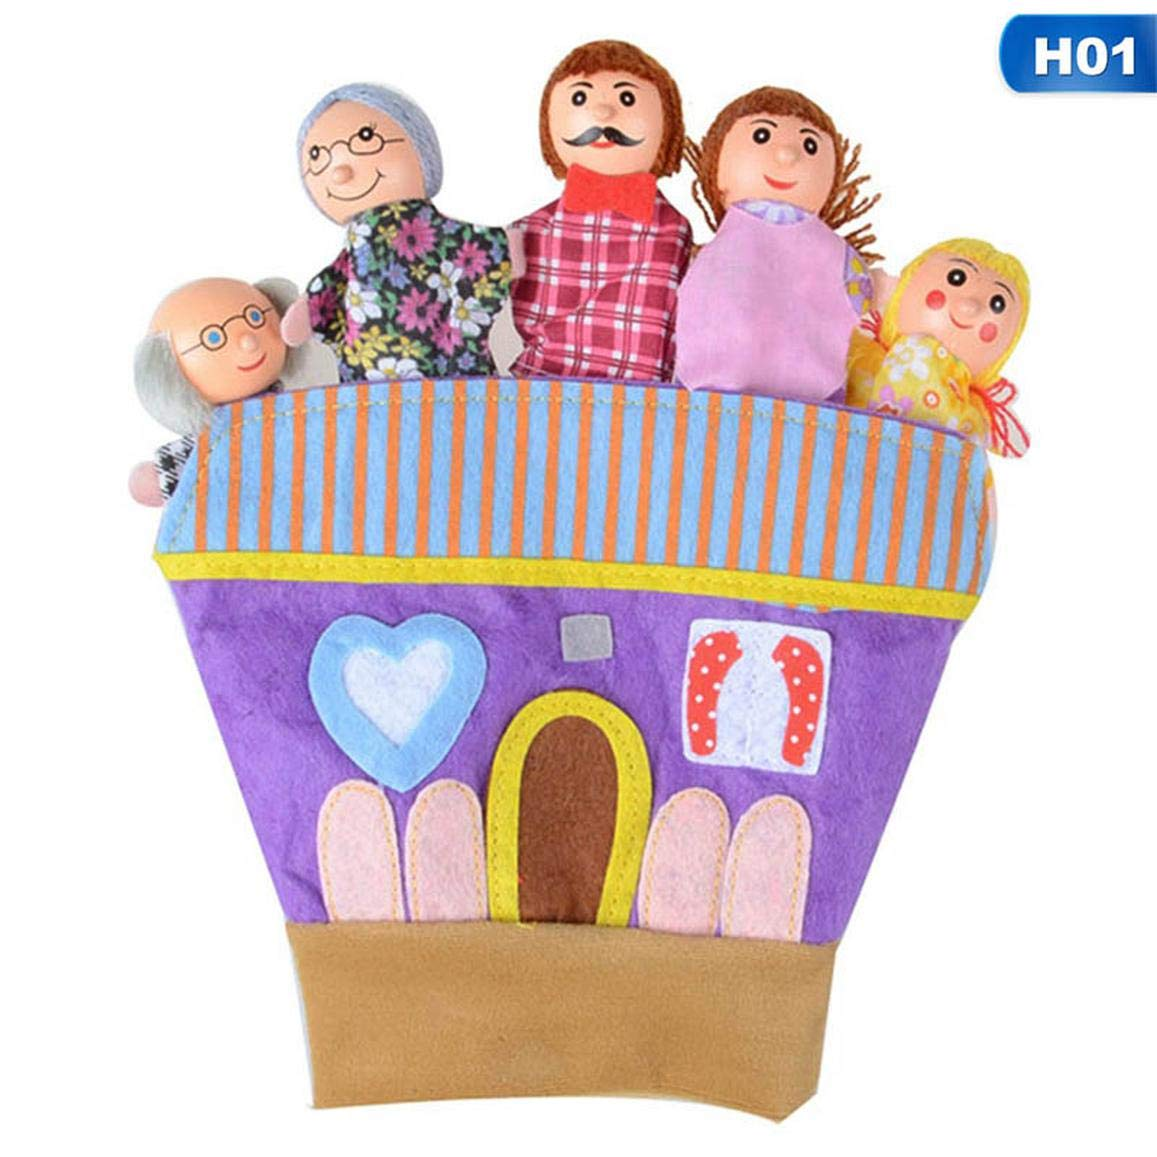 None Glove Castle Story SMIAO Cost-effective Soft Animal Family Hand Glove Puppet Cloth Doll Fingers Puppets Kids Child Toys